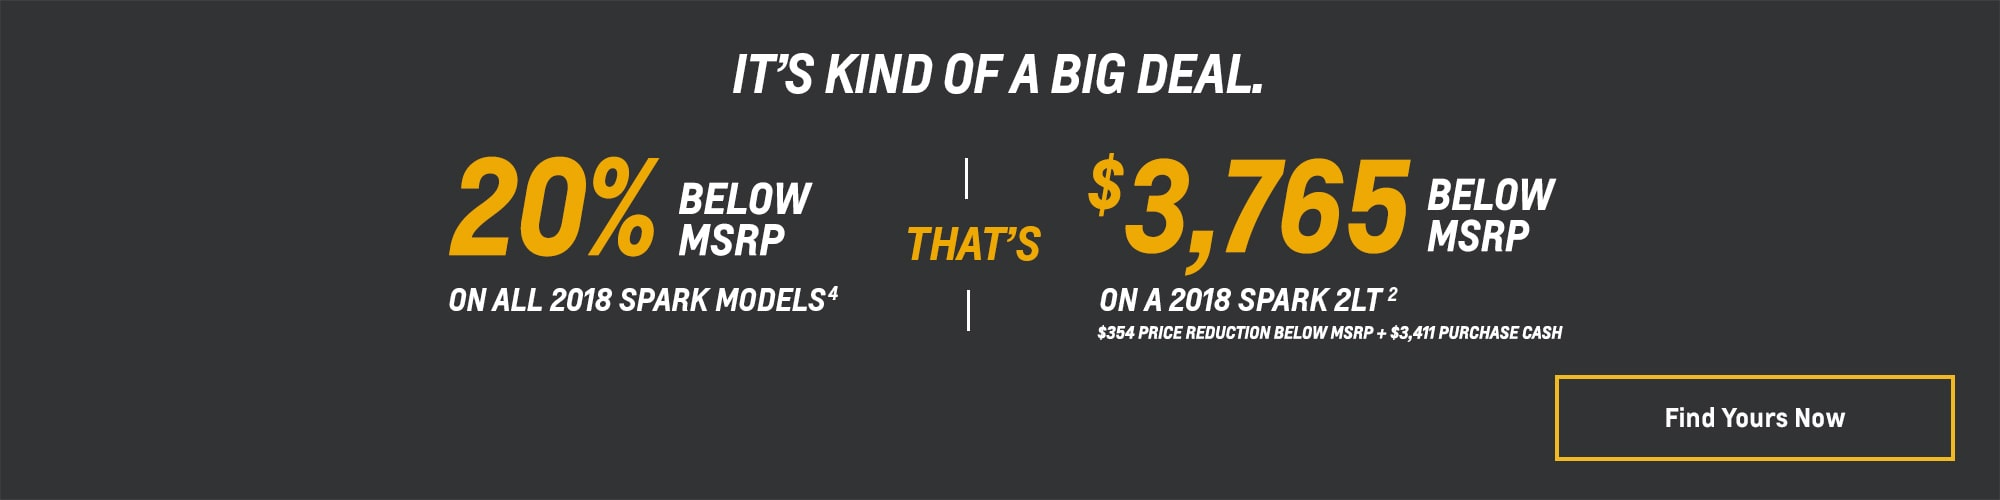 Chevy Deals and Offers: 2018 Spark - 20% Below MSRP